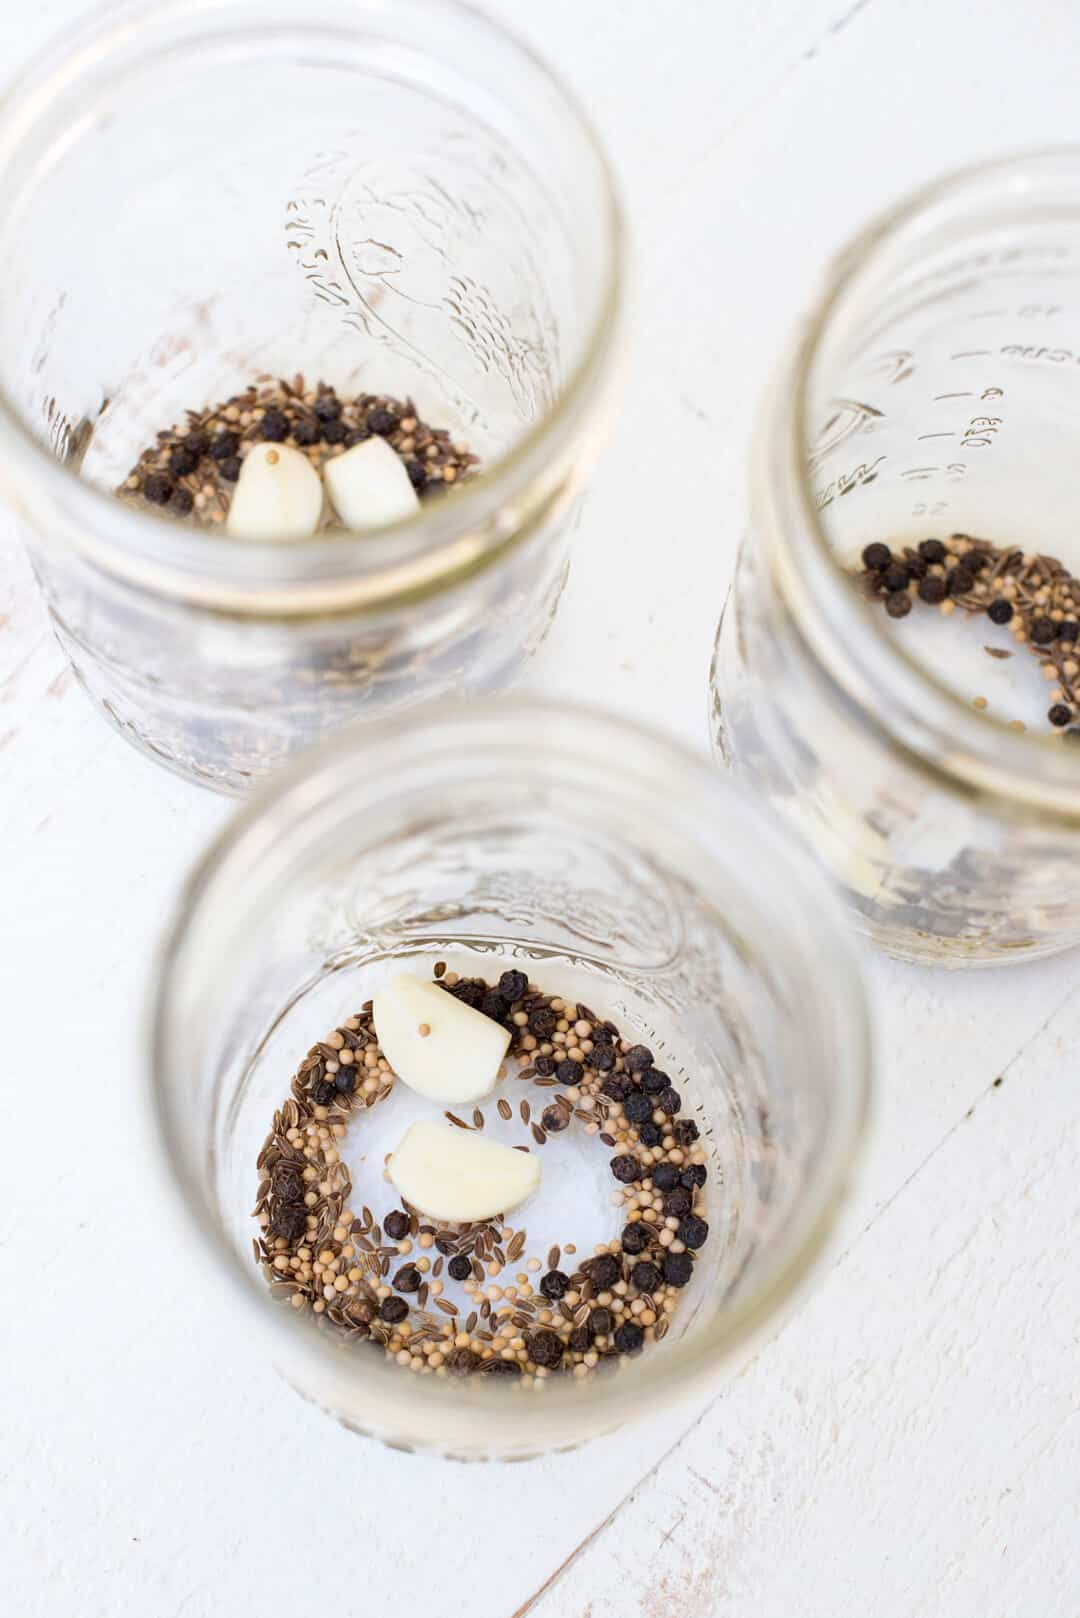 The pickling spices and garlic cloves in the bottom of three empty mason jars.